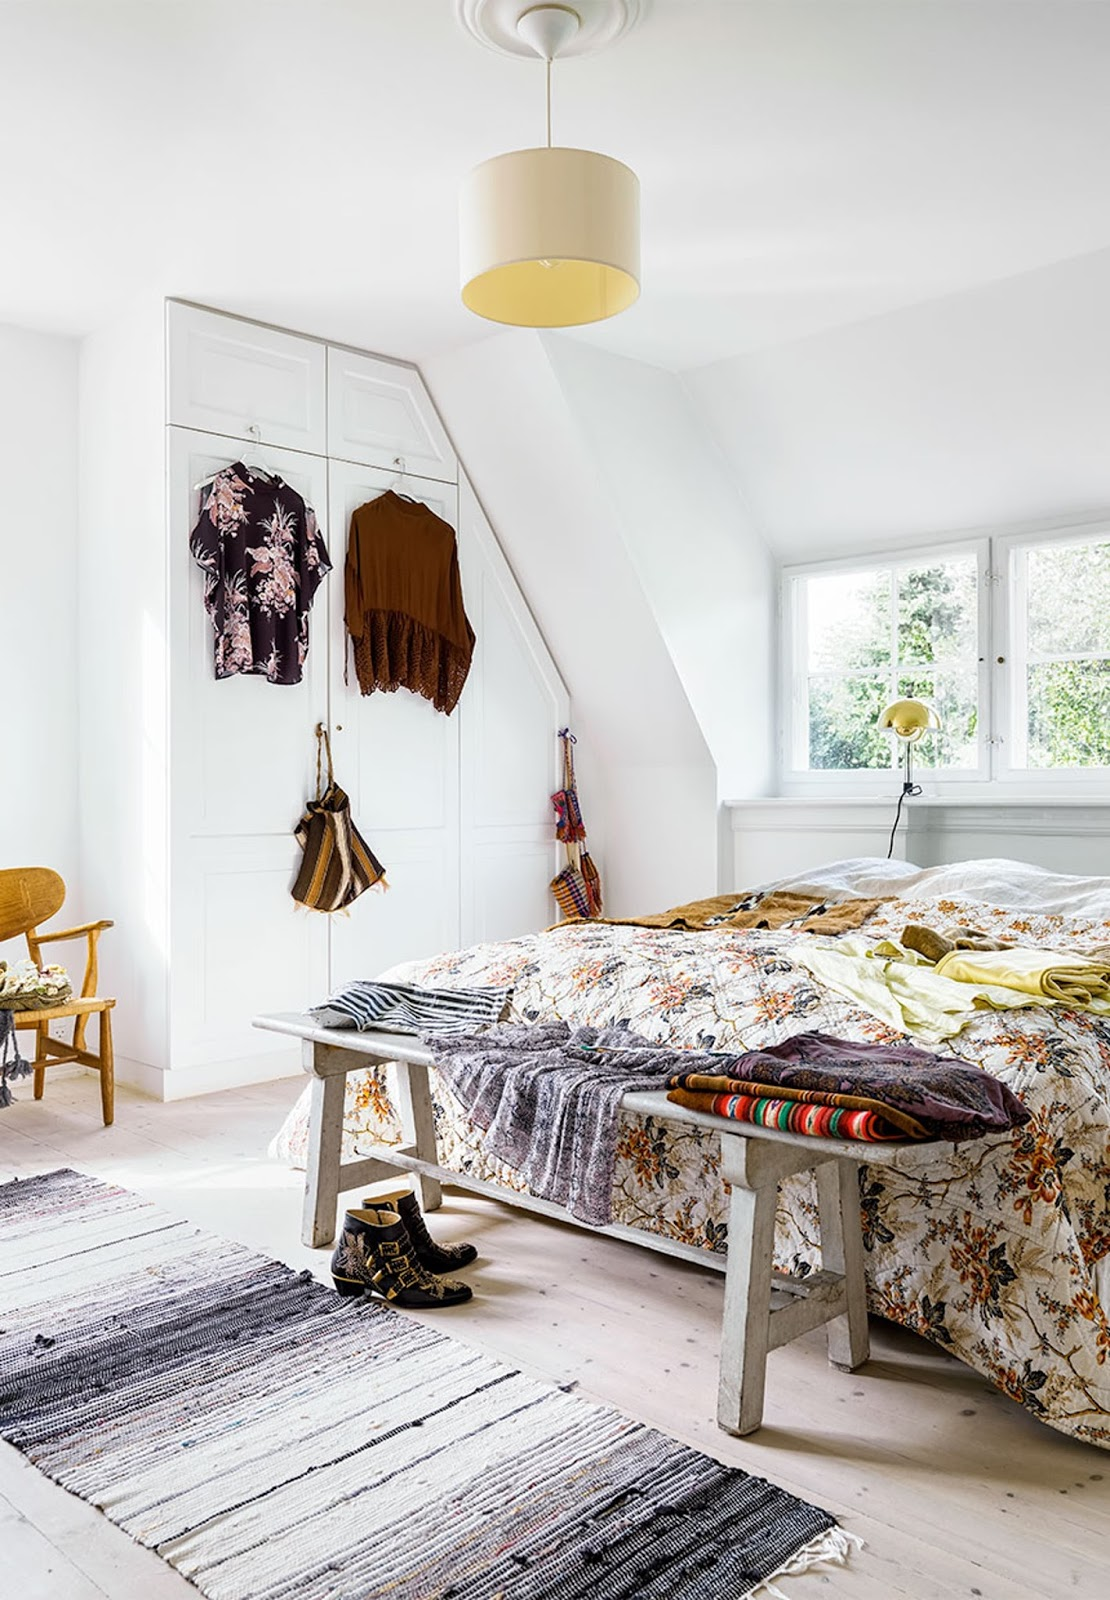 scandinavian interior with colorful rugs, kitchen, oriental bohemian style, eames chairs, art, vintage furniture